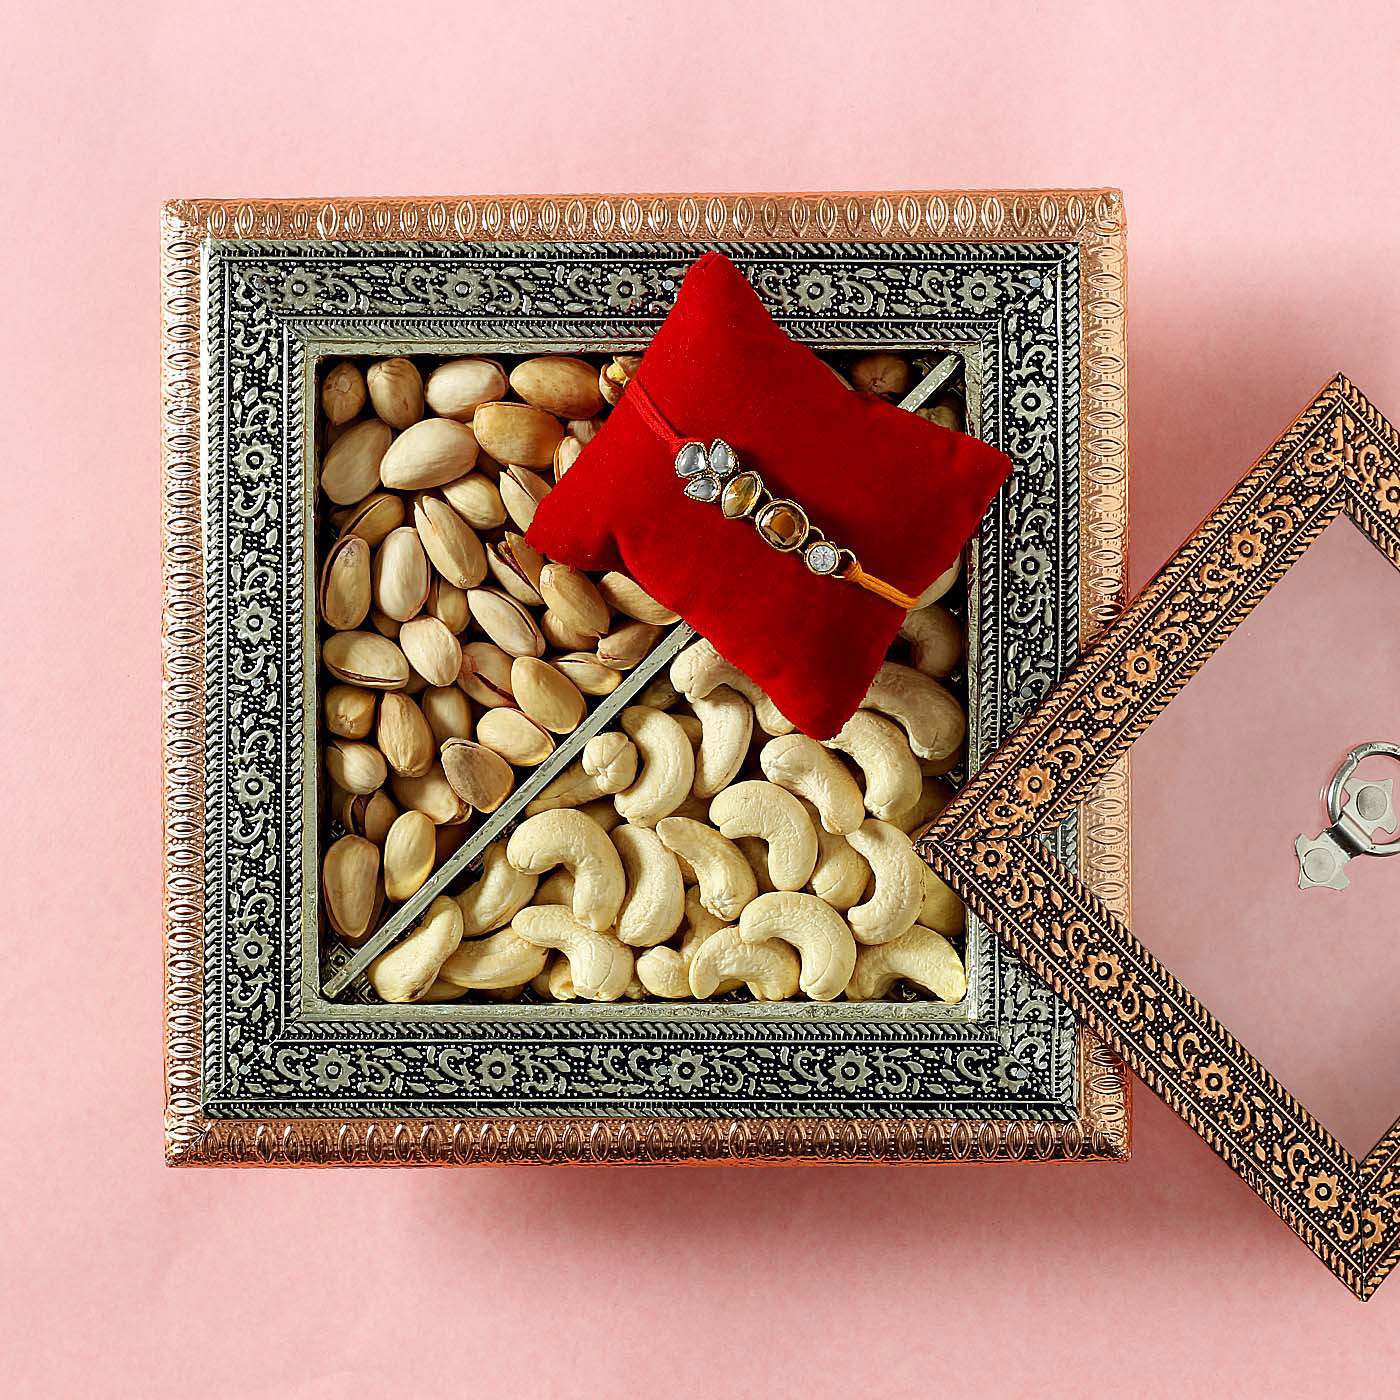 copper-kundan-rakhi-with-cashews-pistachio-in-wooden-metal-embossed-box